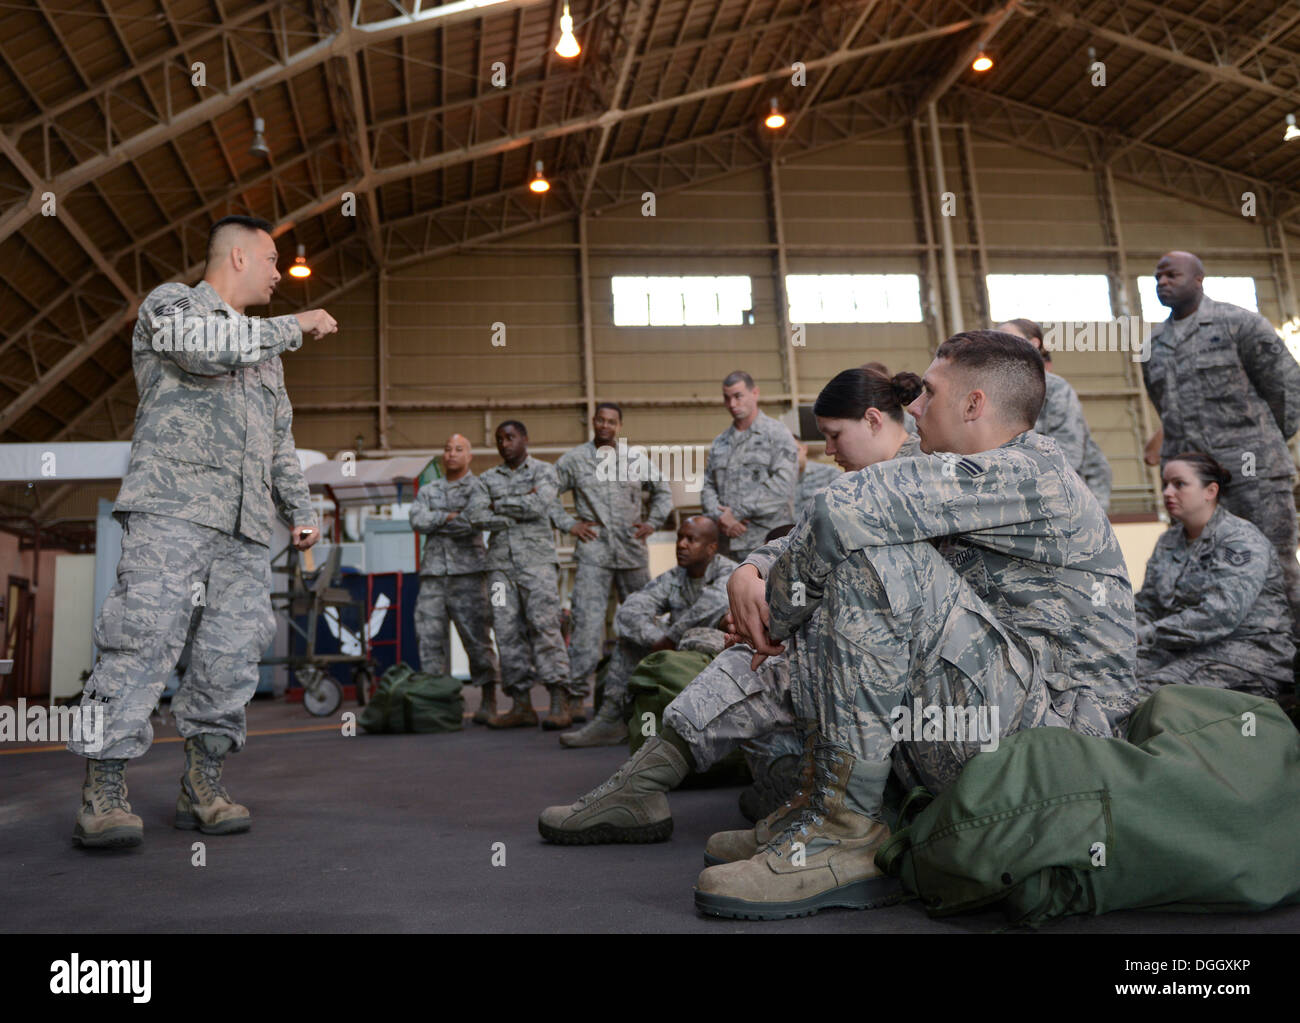 Staff Sgt. Don Flores, 374th Medical Group, briefs a group of Airmen on proper Self Aid Buddy Care techniques and procedures during the ability to survive and operate rodeo at Yokota Air Base, Japan, Oct. 8, 2013. Topics included how to apply a tourniquet - Stock Image